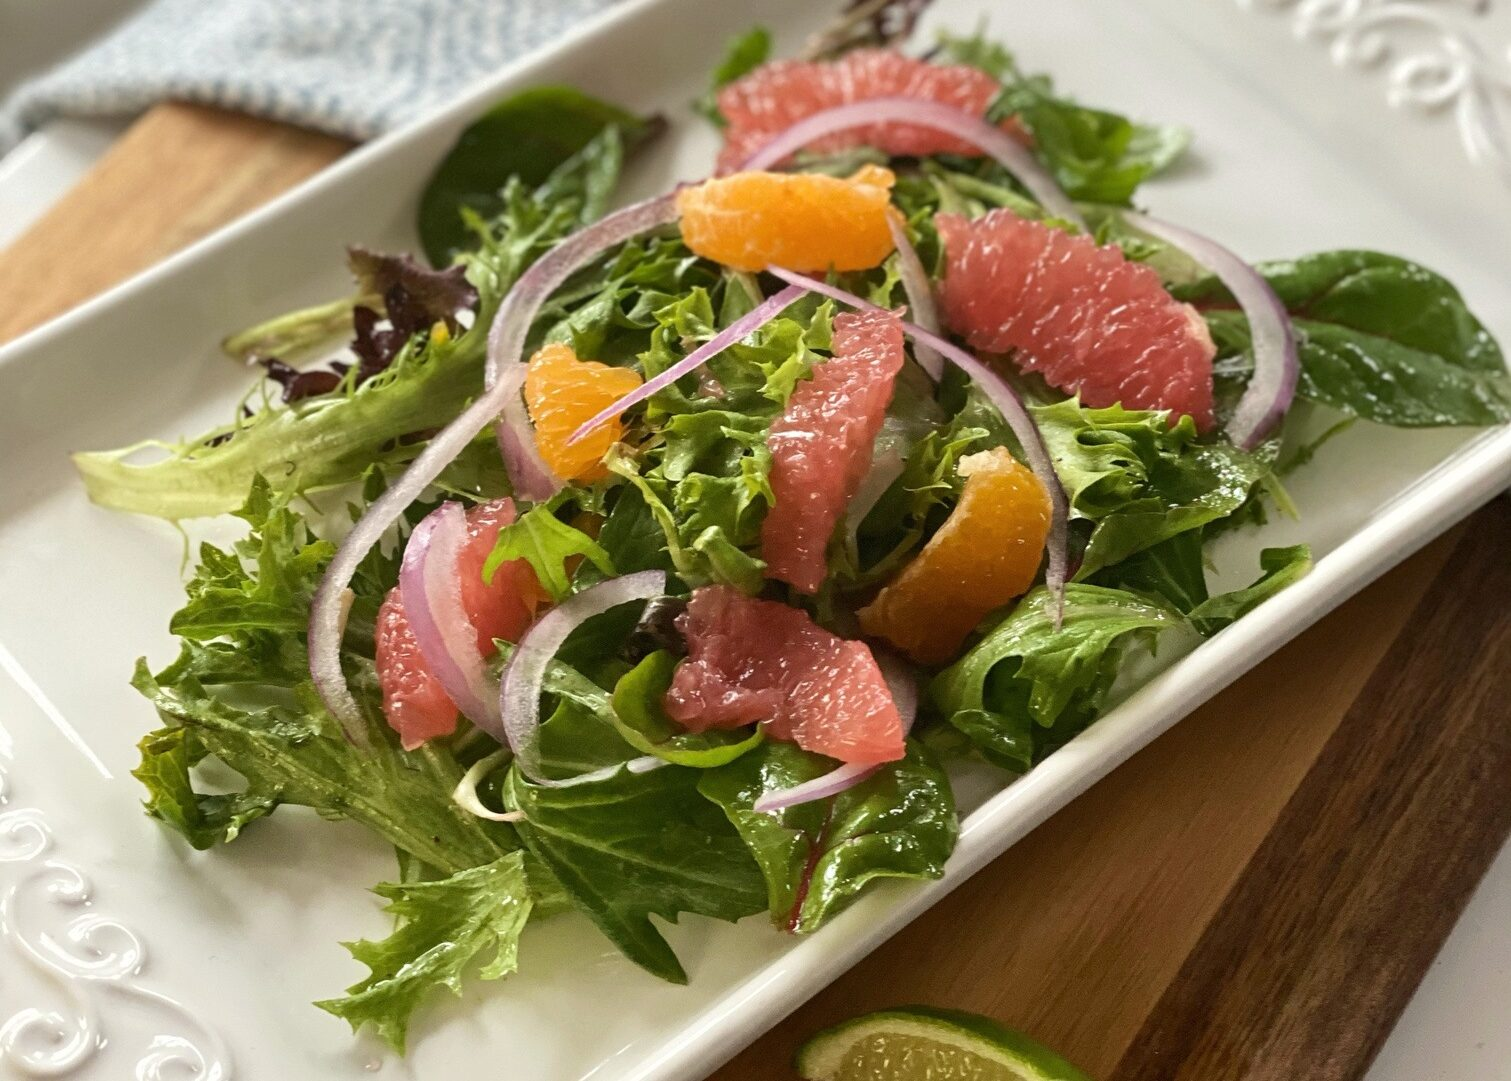 Salad with Grapefruit, Orange, and Lime